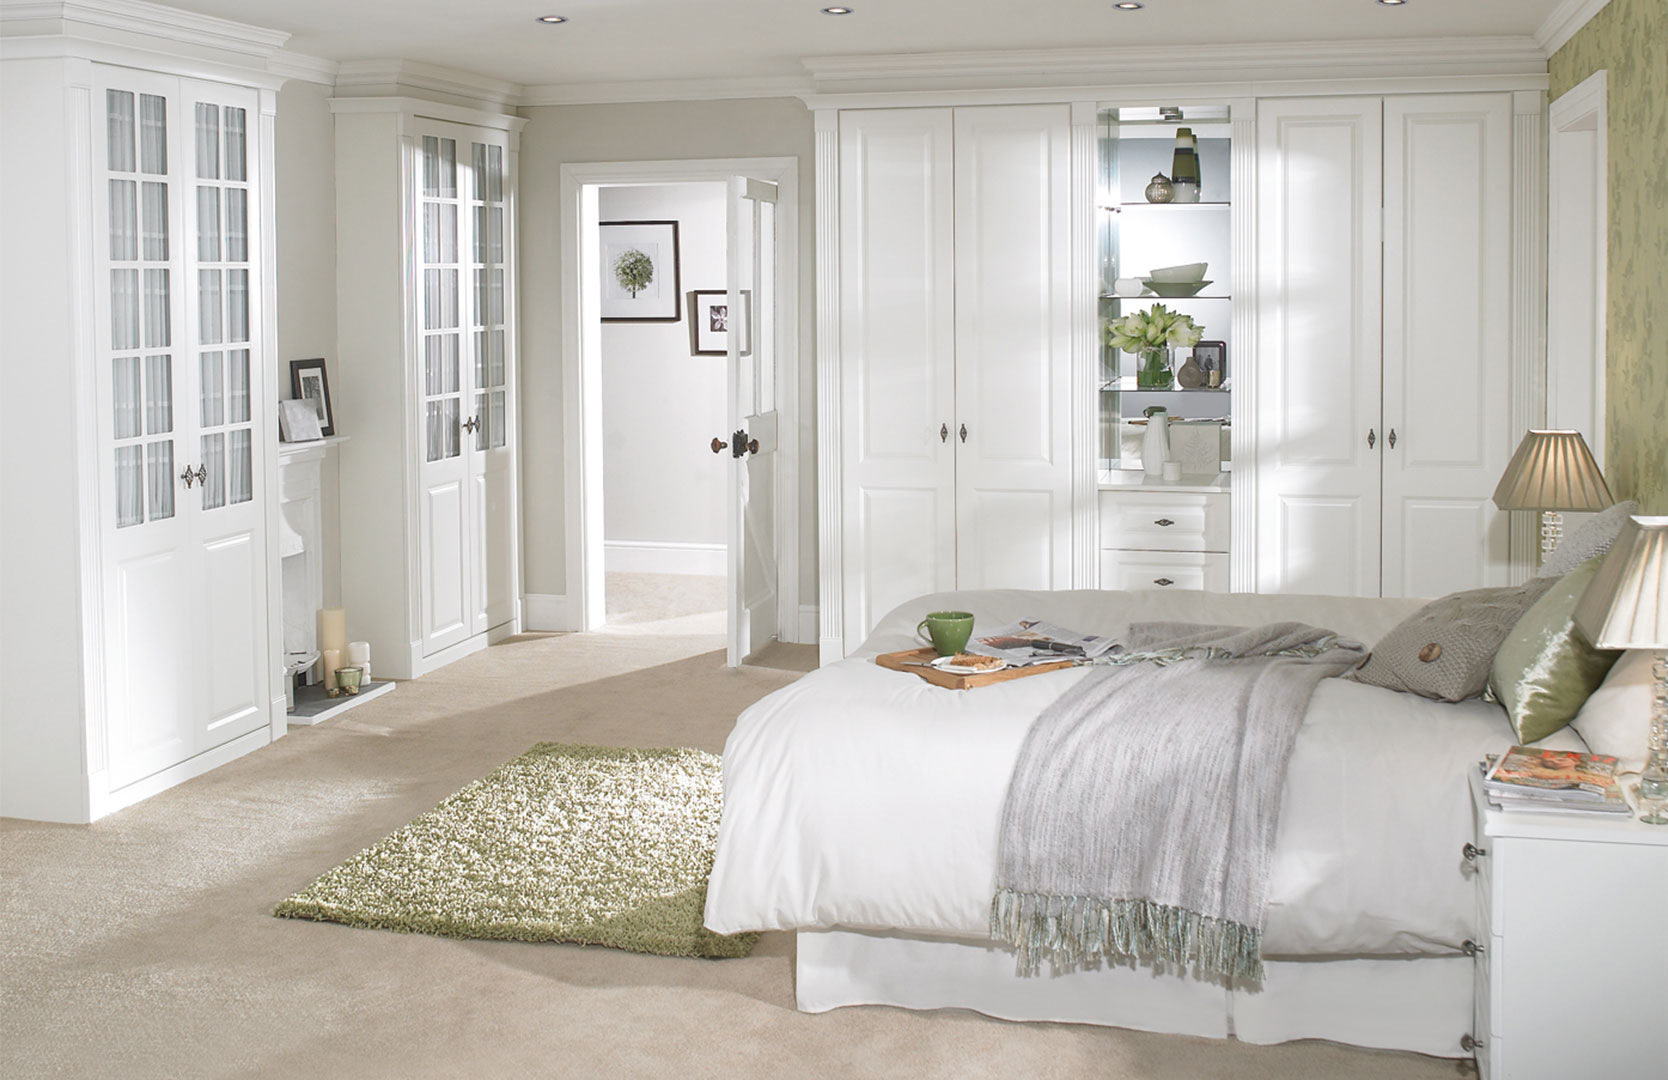 White bedroom design ideas collection for your home - Idea for decorating bedrooms ...